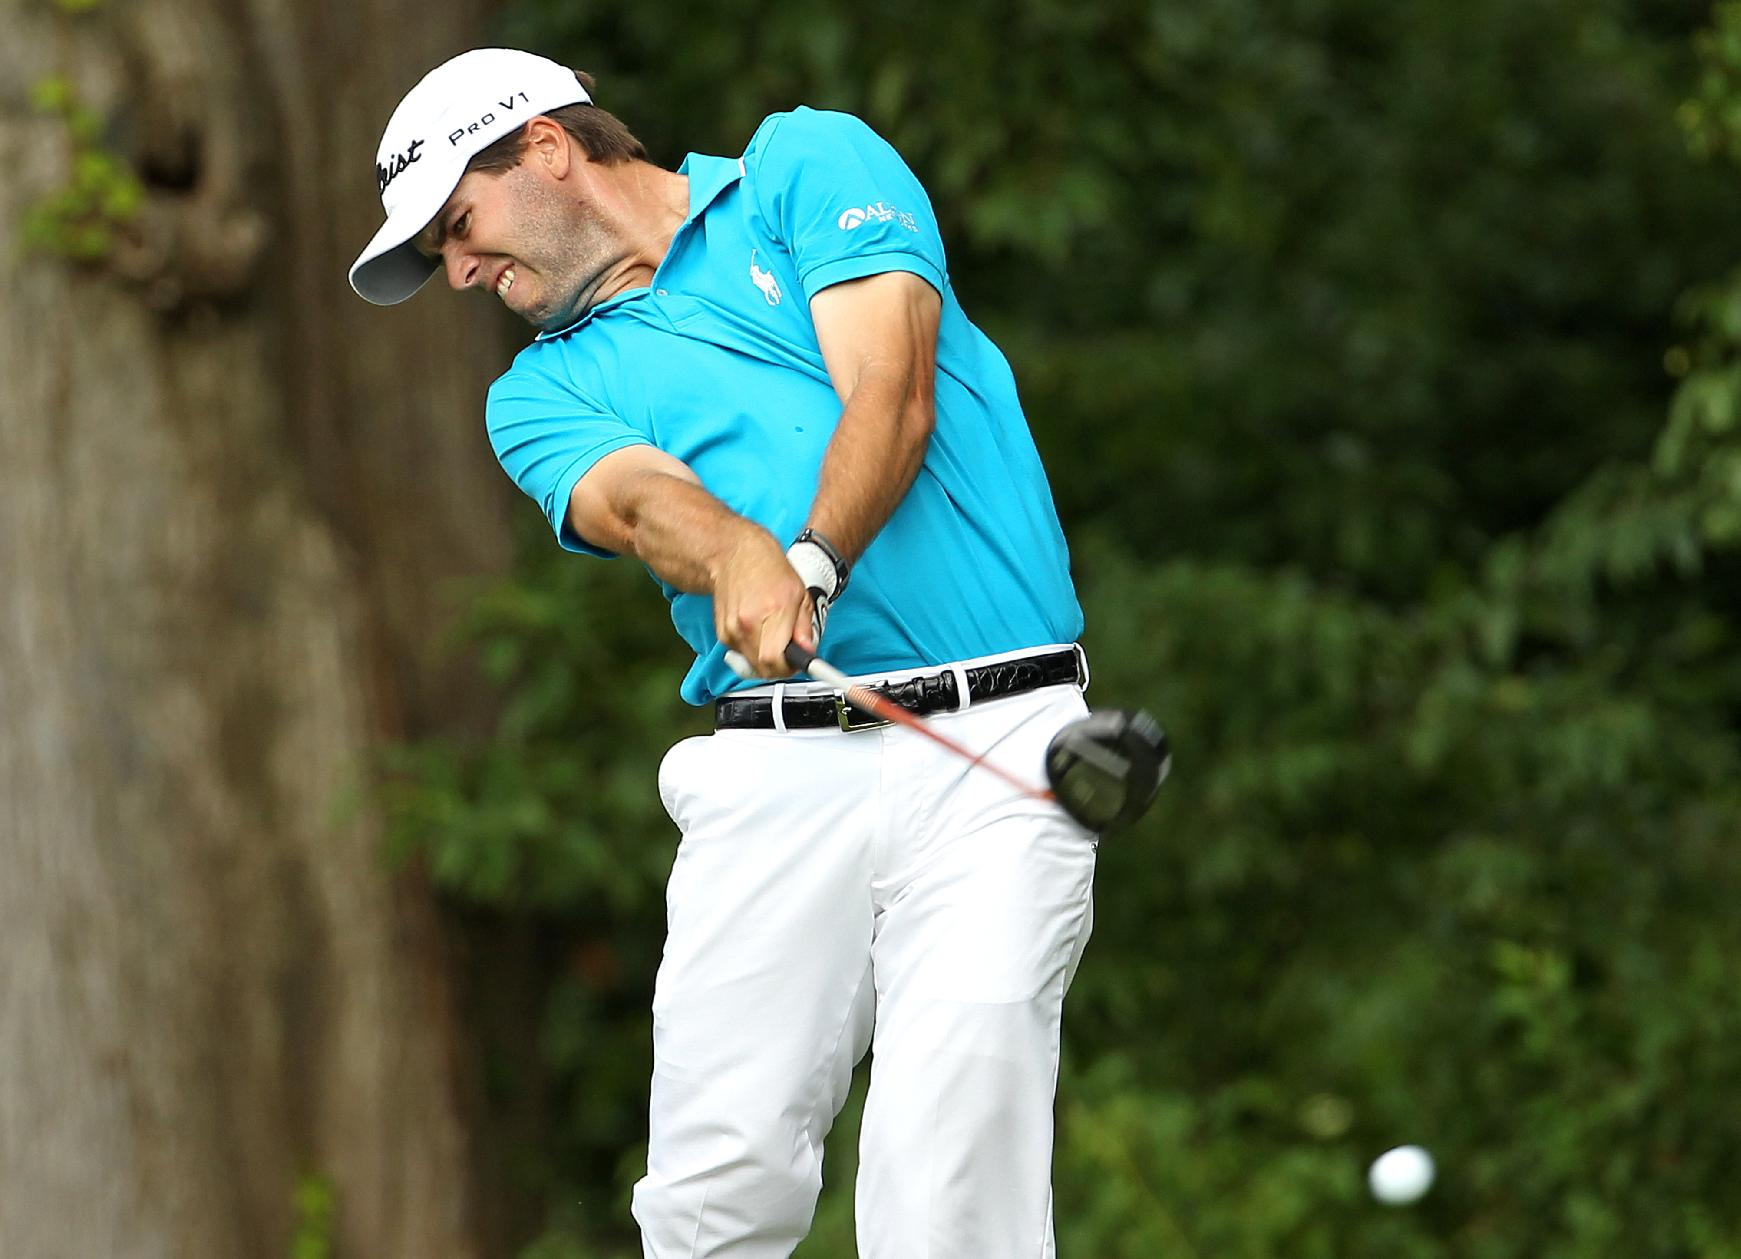 Ben Martin tees off on the fourth hole during first-round play at The Barclays golf tournament Thursday, Aug. 21, 2014, in Paramus, NJ